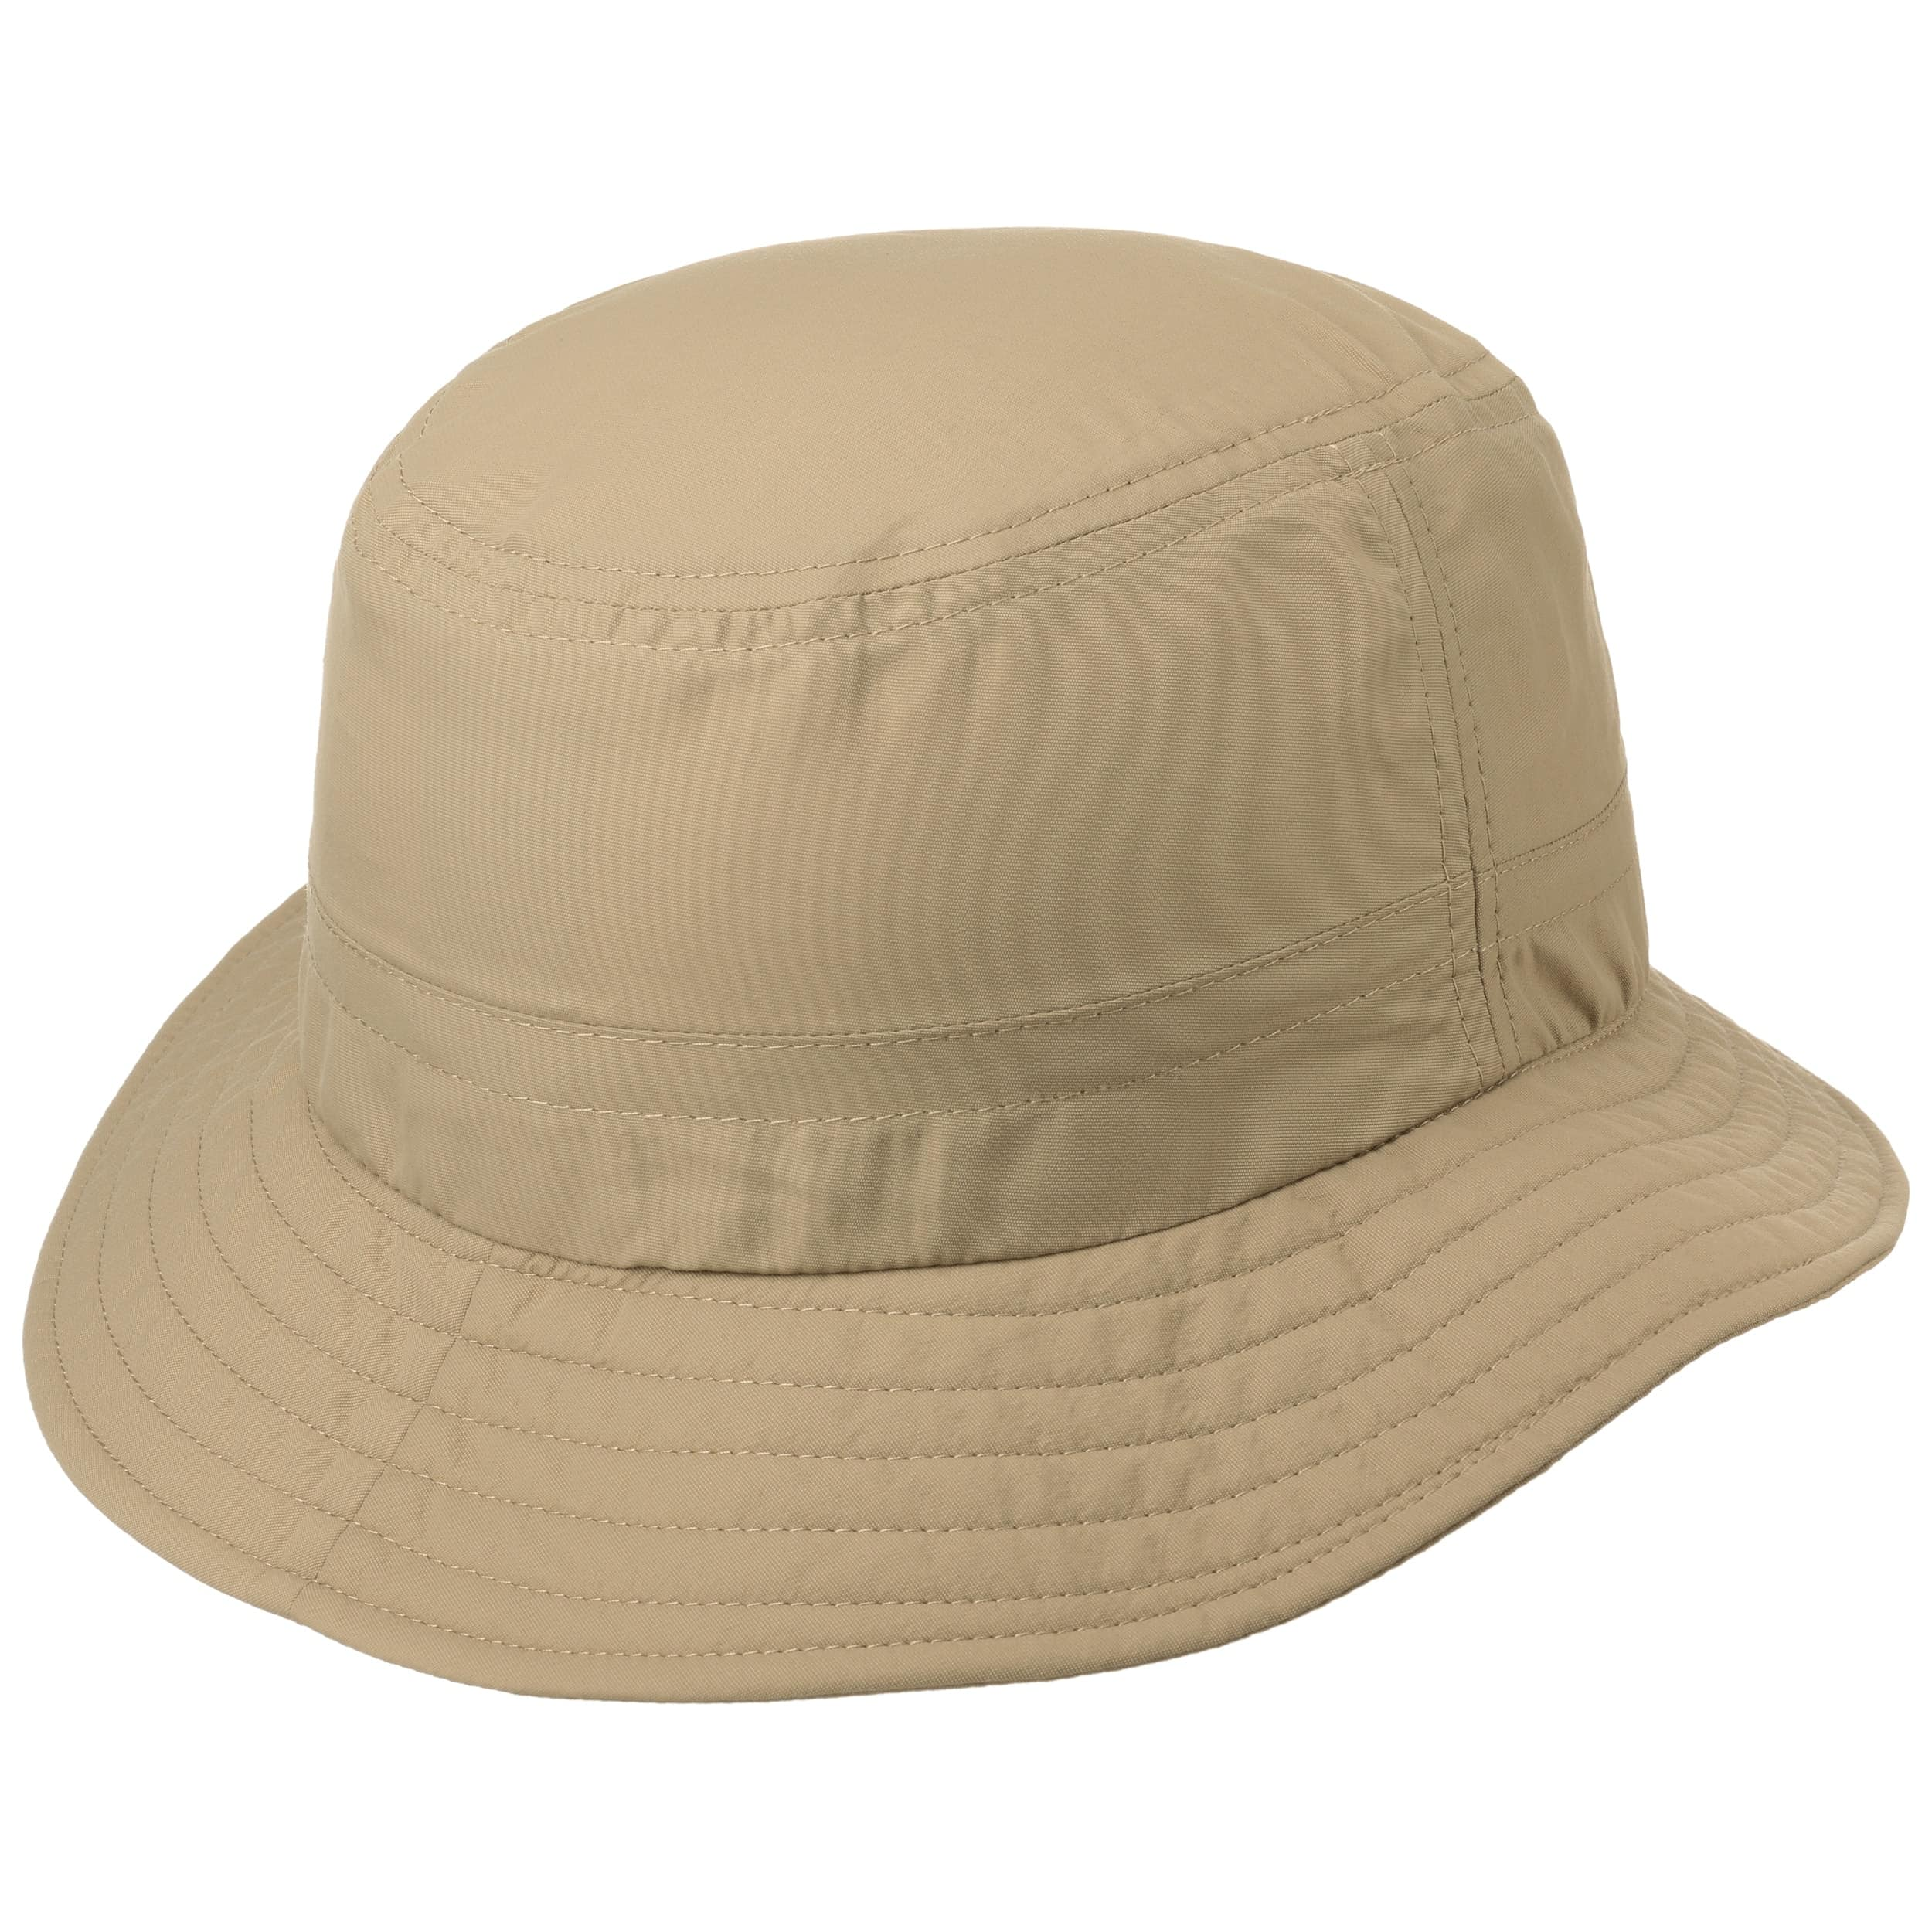 488c7b1c2ae9 ... UV Protection Sun Hat by Mayser - dark beige 3 ...